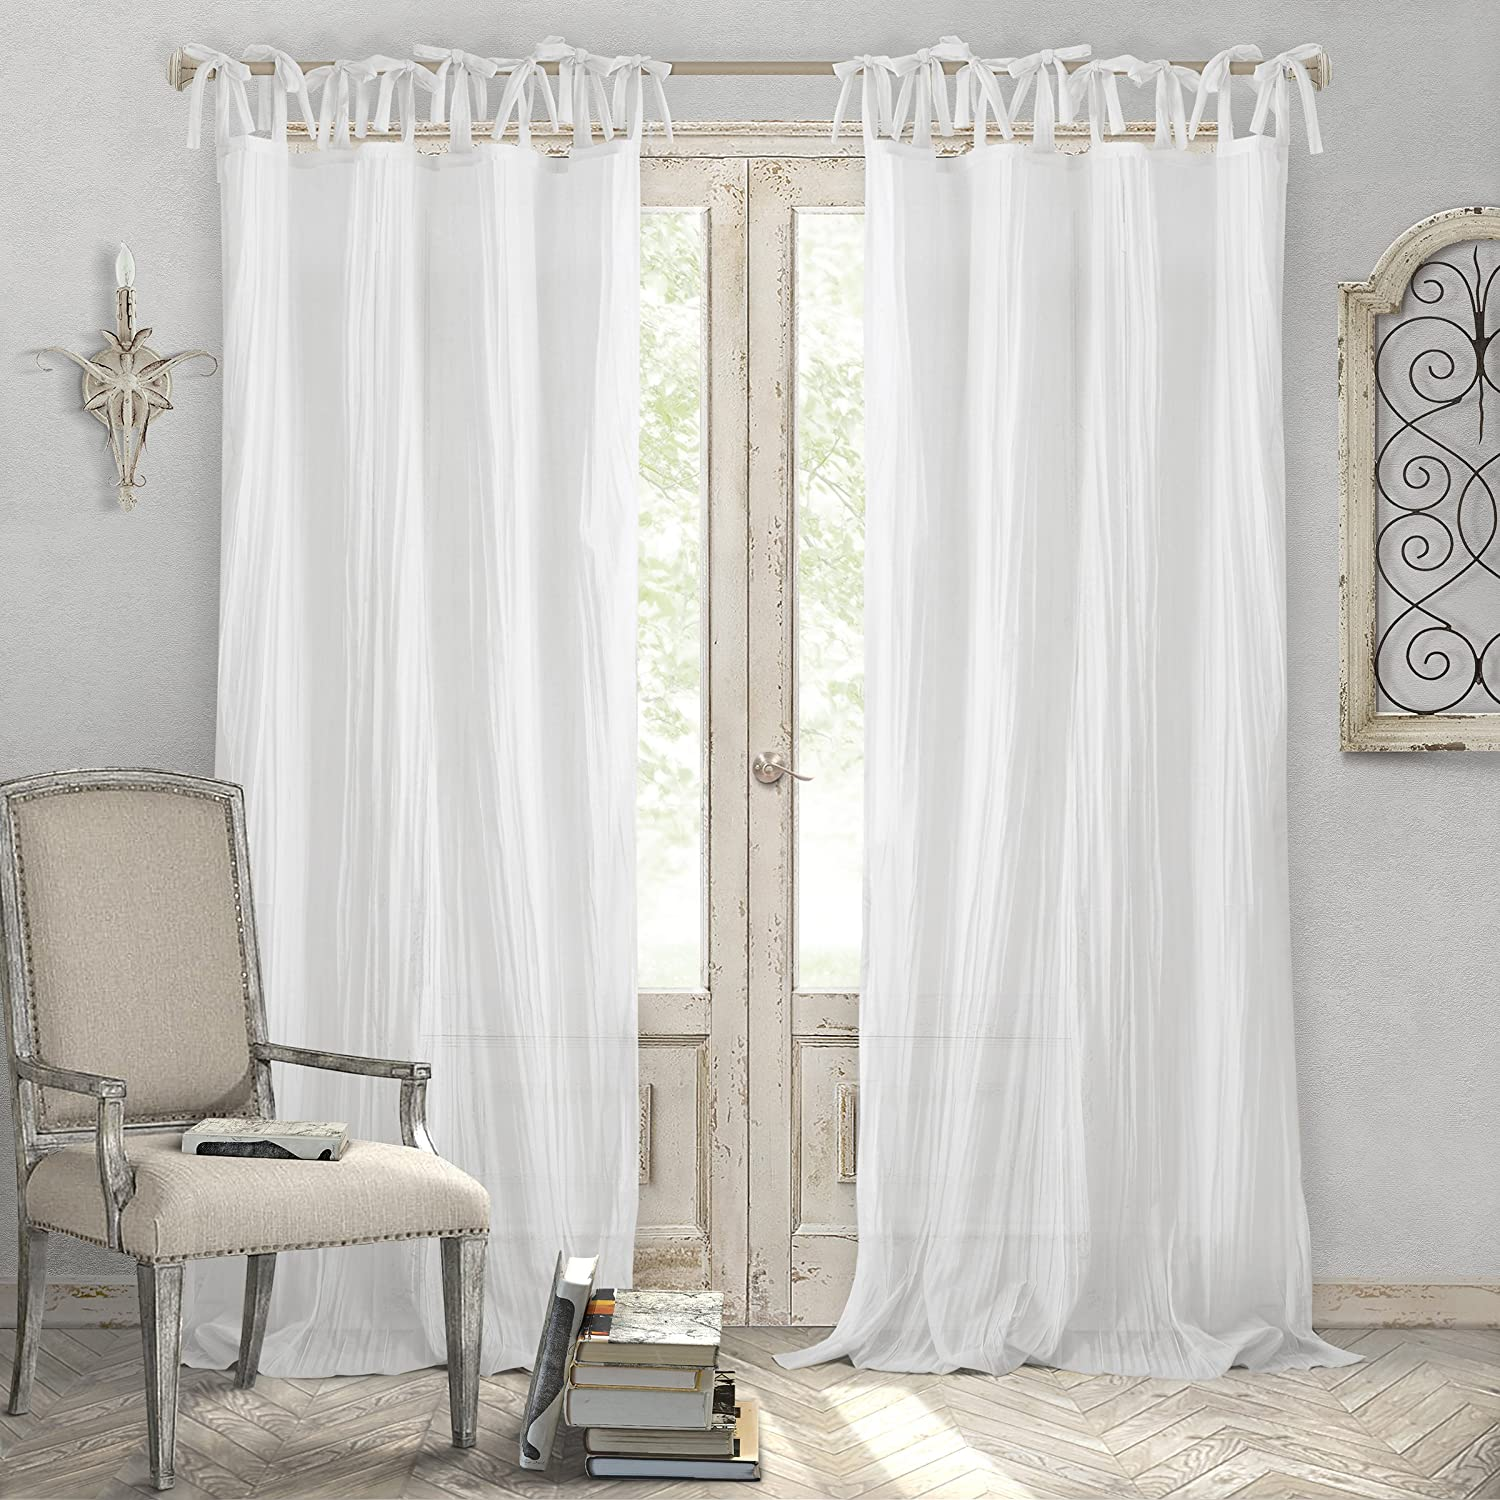 "Elrene Home Fashions Crushed Semi-Sheer Adjustable Tie Top Single Panel Window Curtain Drape, 52"" x 84"" (1, White"